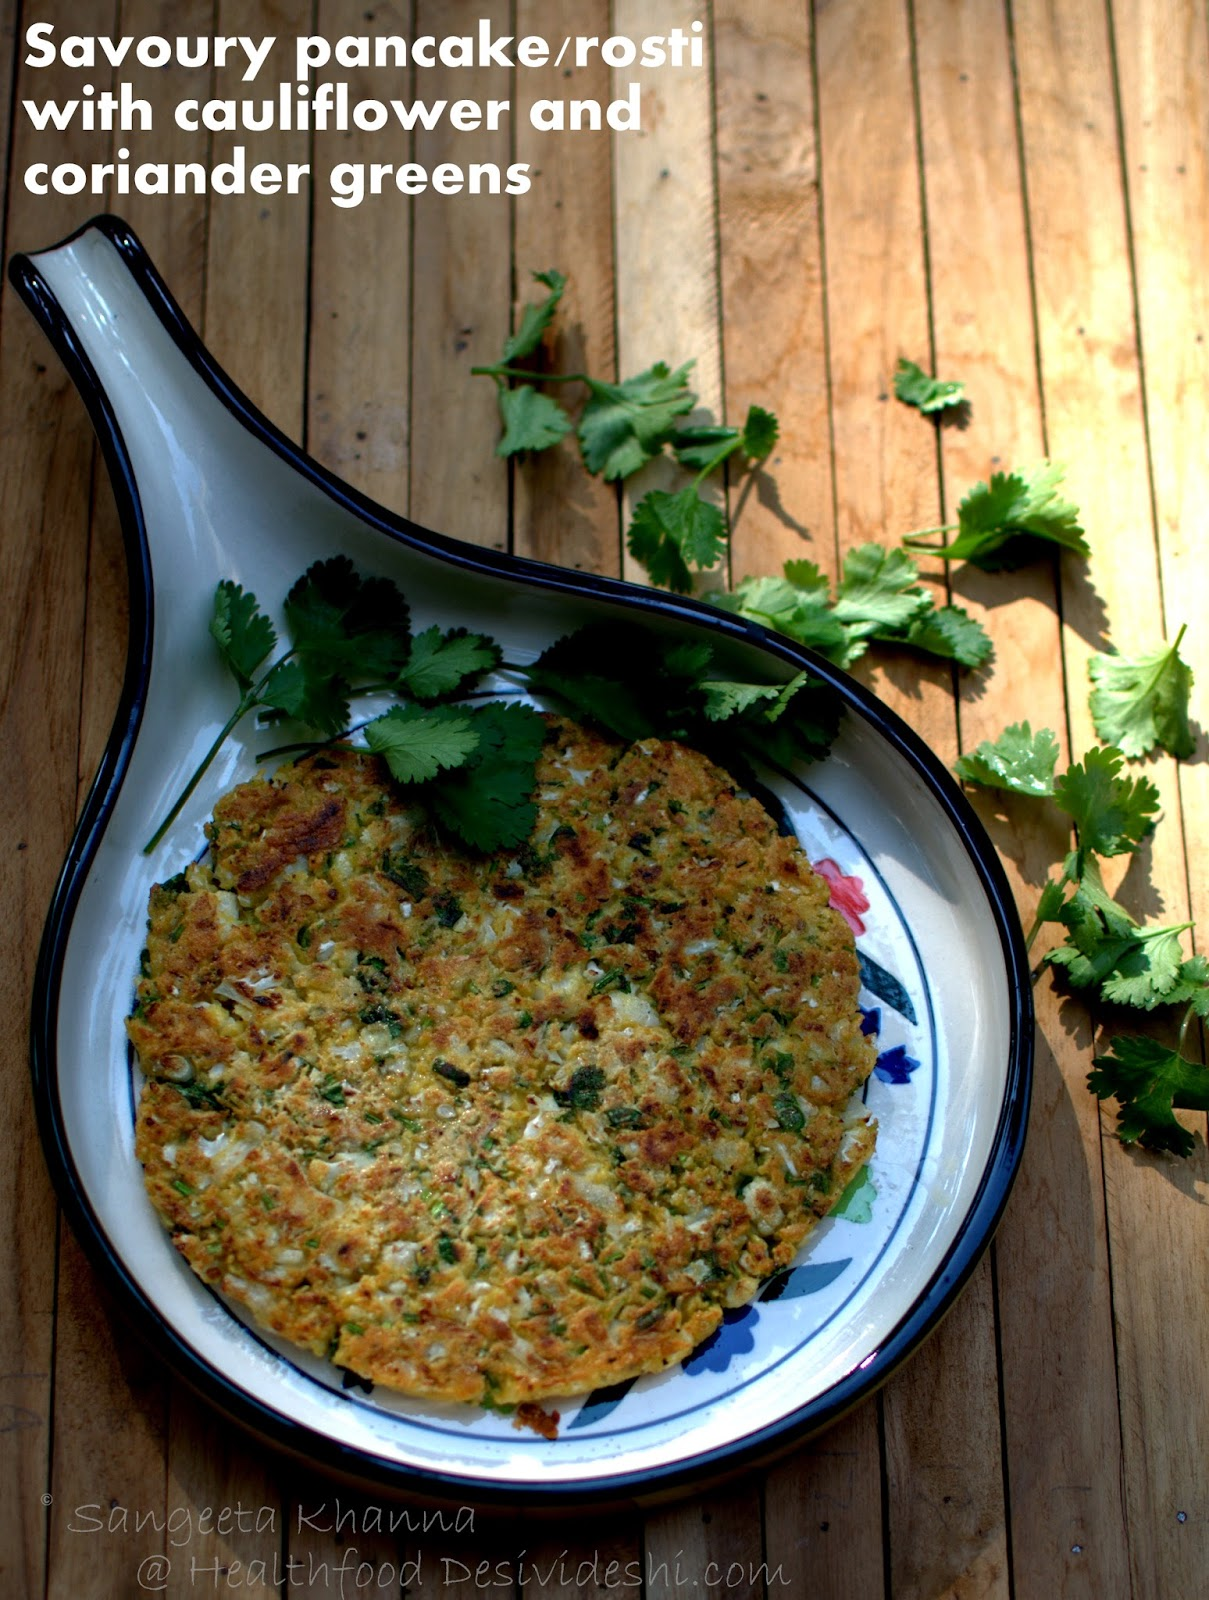 101 gluten free breakfasts : savoury pancake or rosti with cauliflowers and coriander greens